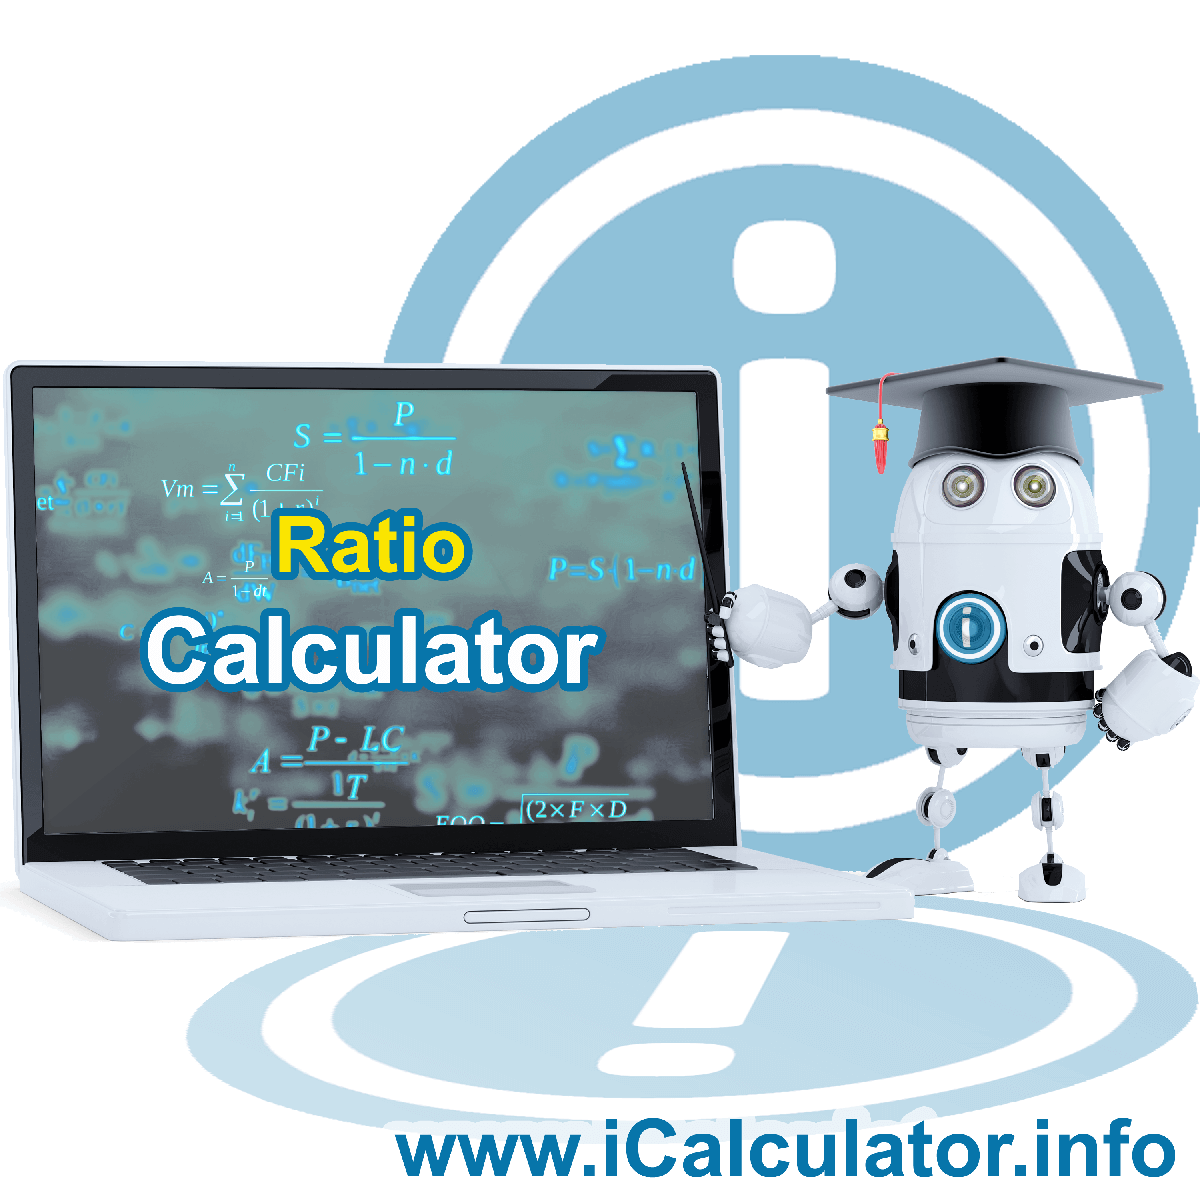 Ratio Calculator: This image show the calculator robot pointing to a screen with the formula for calculating ratios manually using ratio formulas.